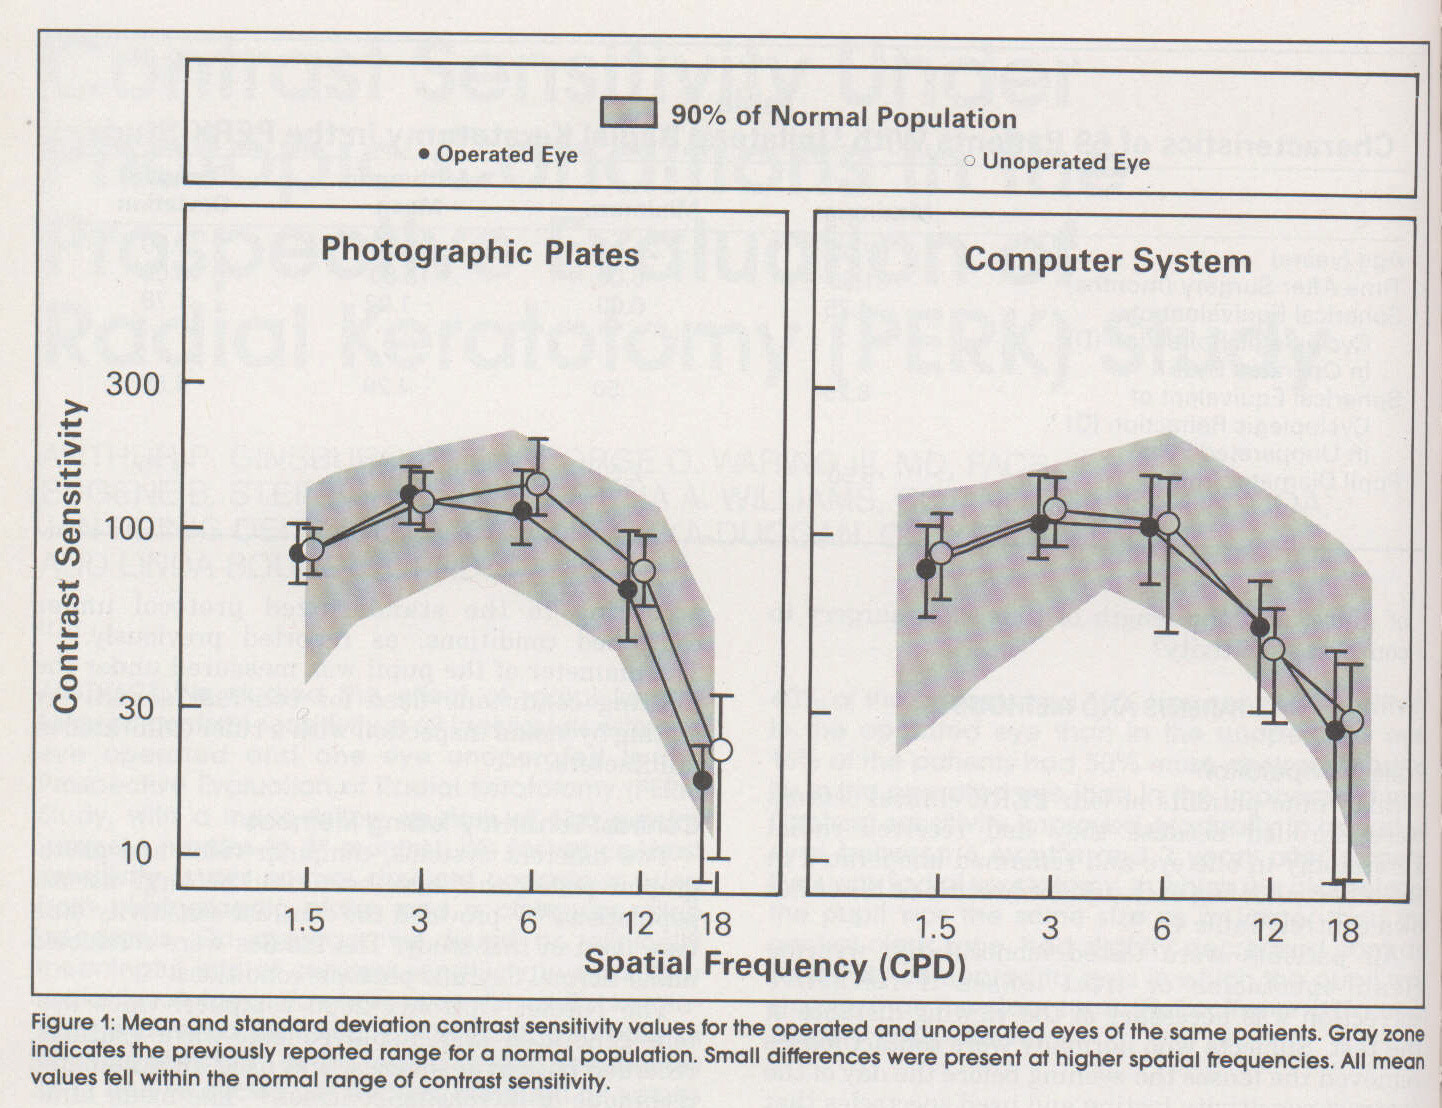 Contrast Sensitivity Under Photopic Conditions In The Prospective Evaluation Of Radial